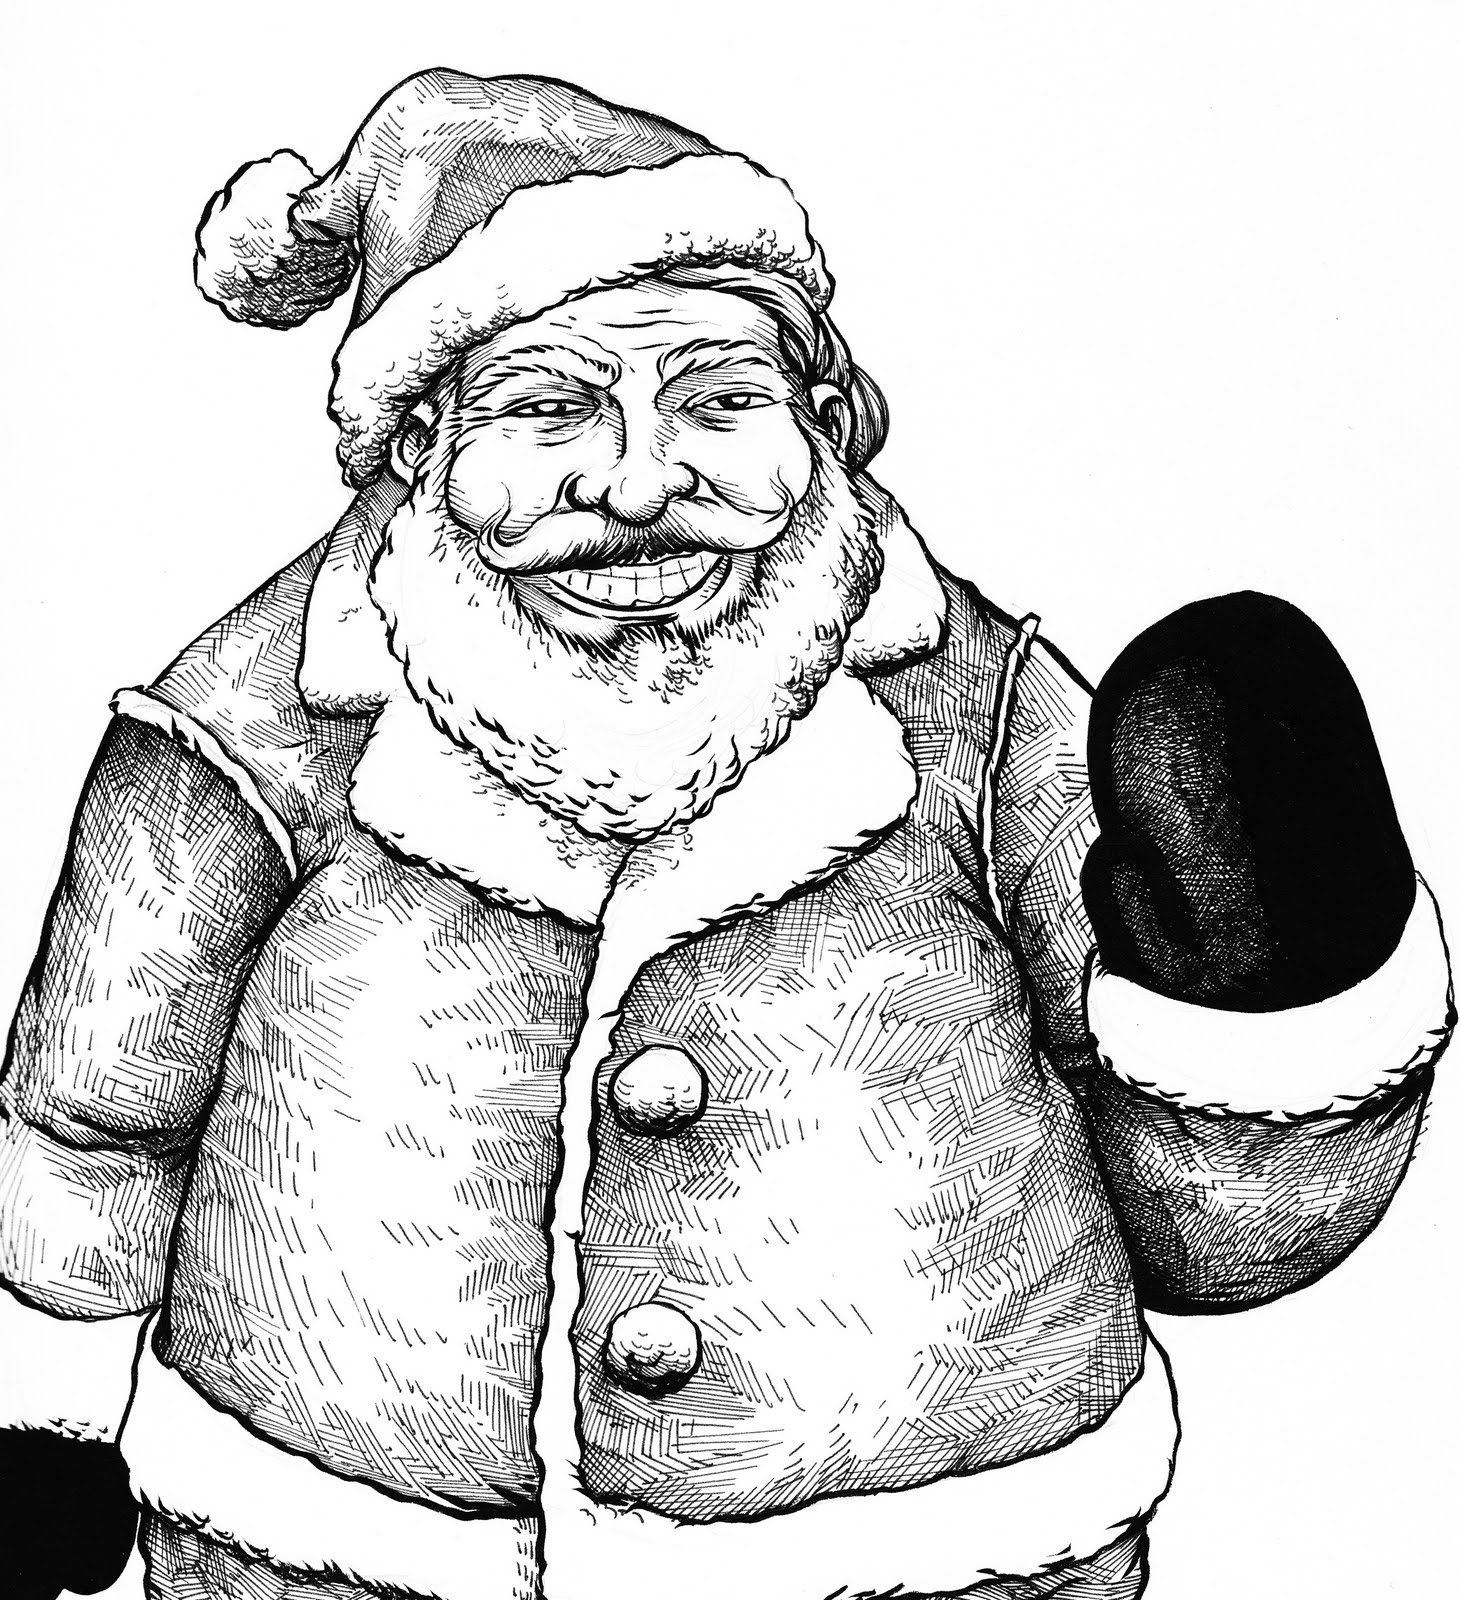 santa sketch pencil art drawin